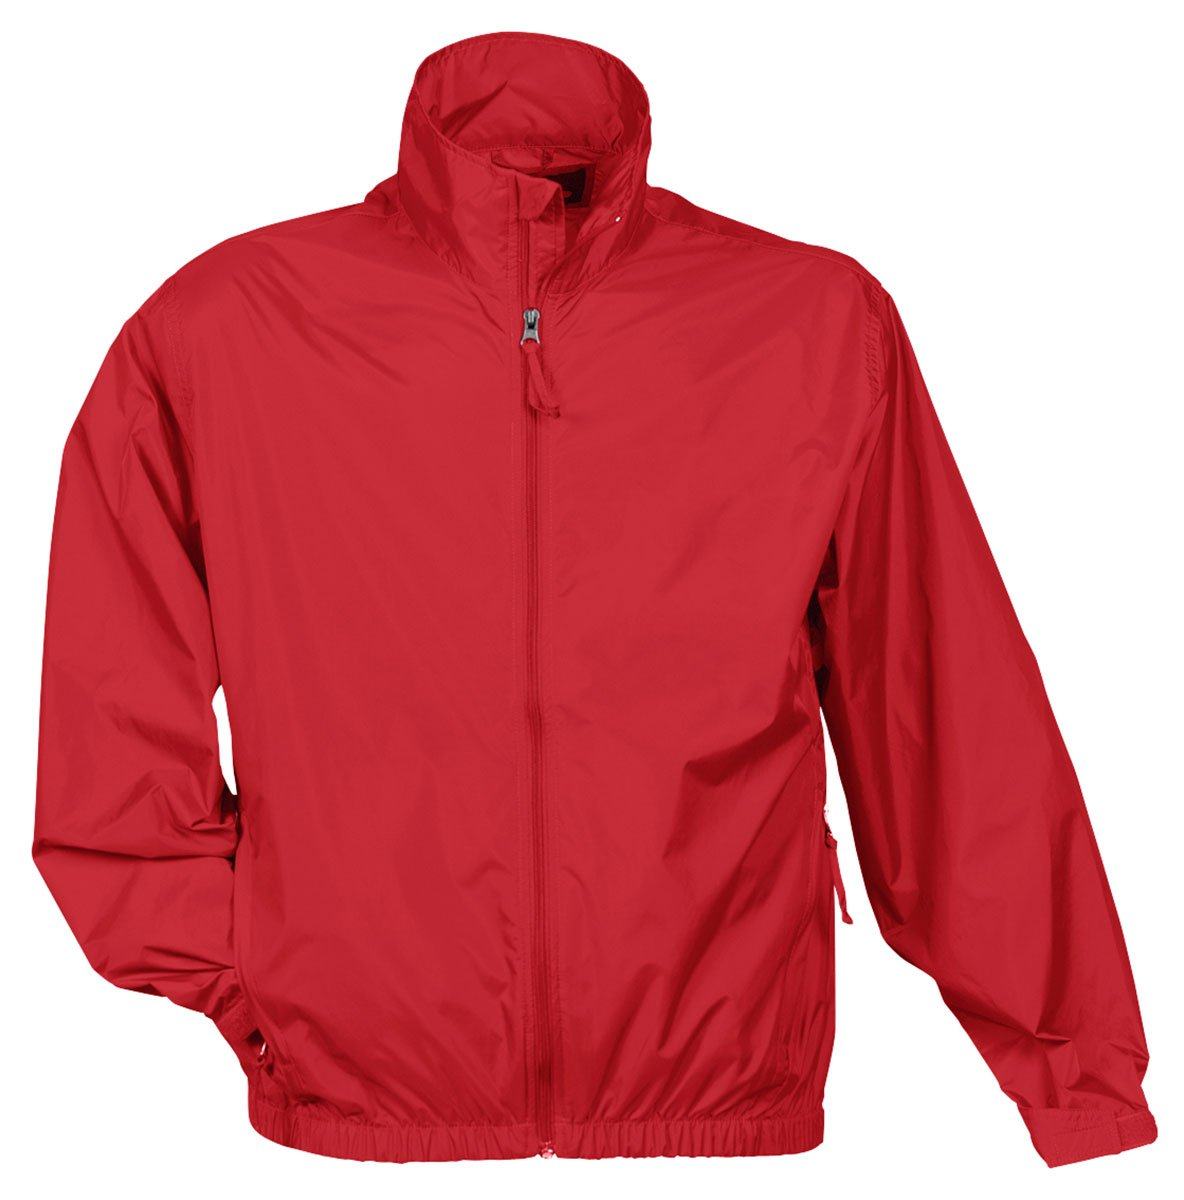 Tri Mountain Men's Lightweight Water Resistant Jacket, Red, Large by Tri-Mountain